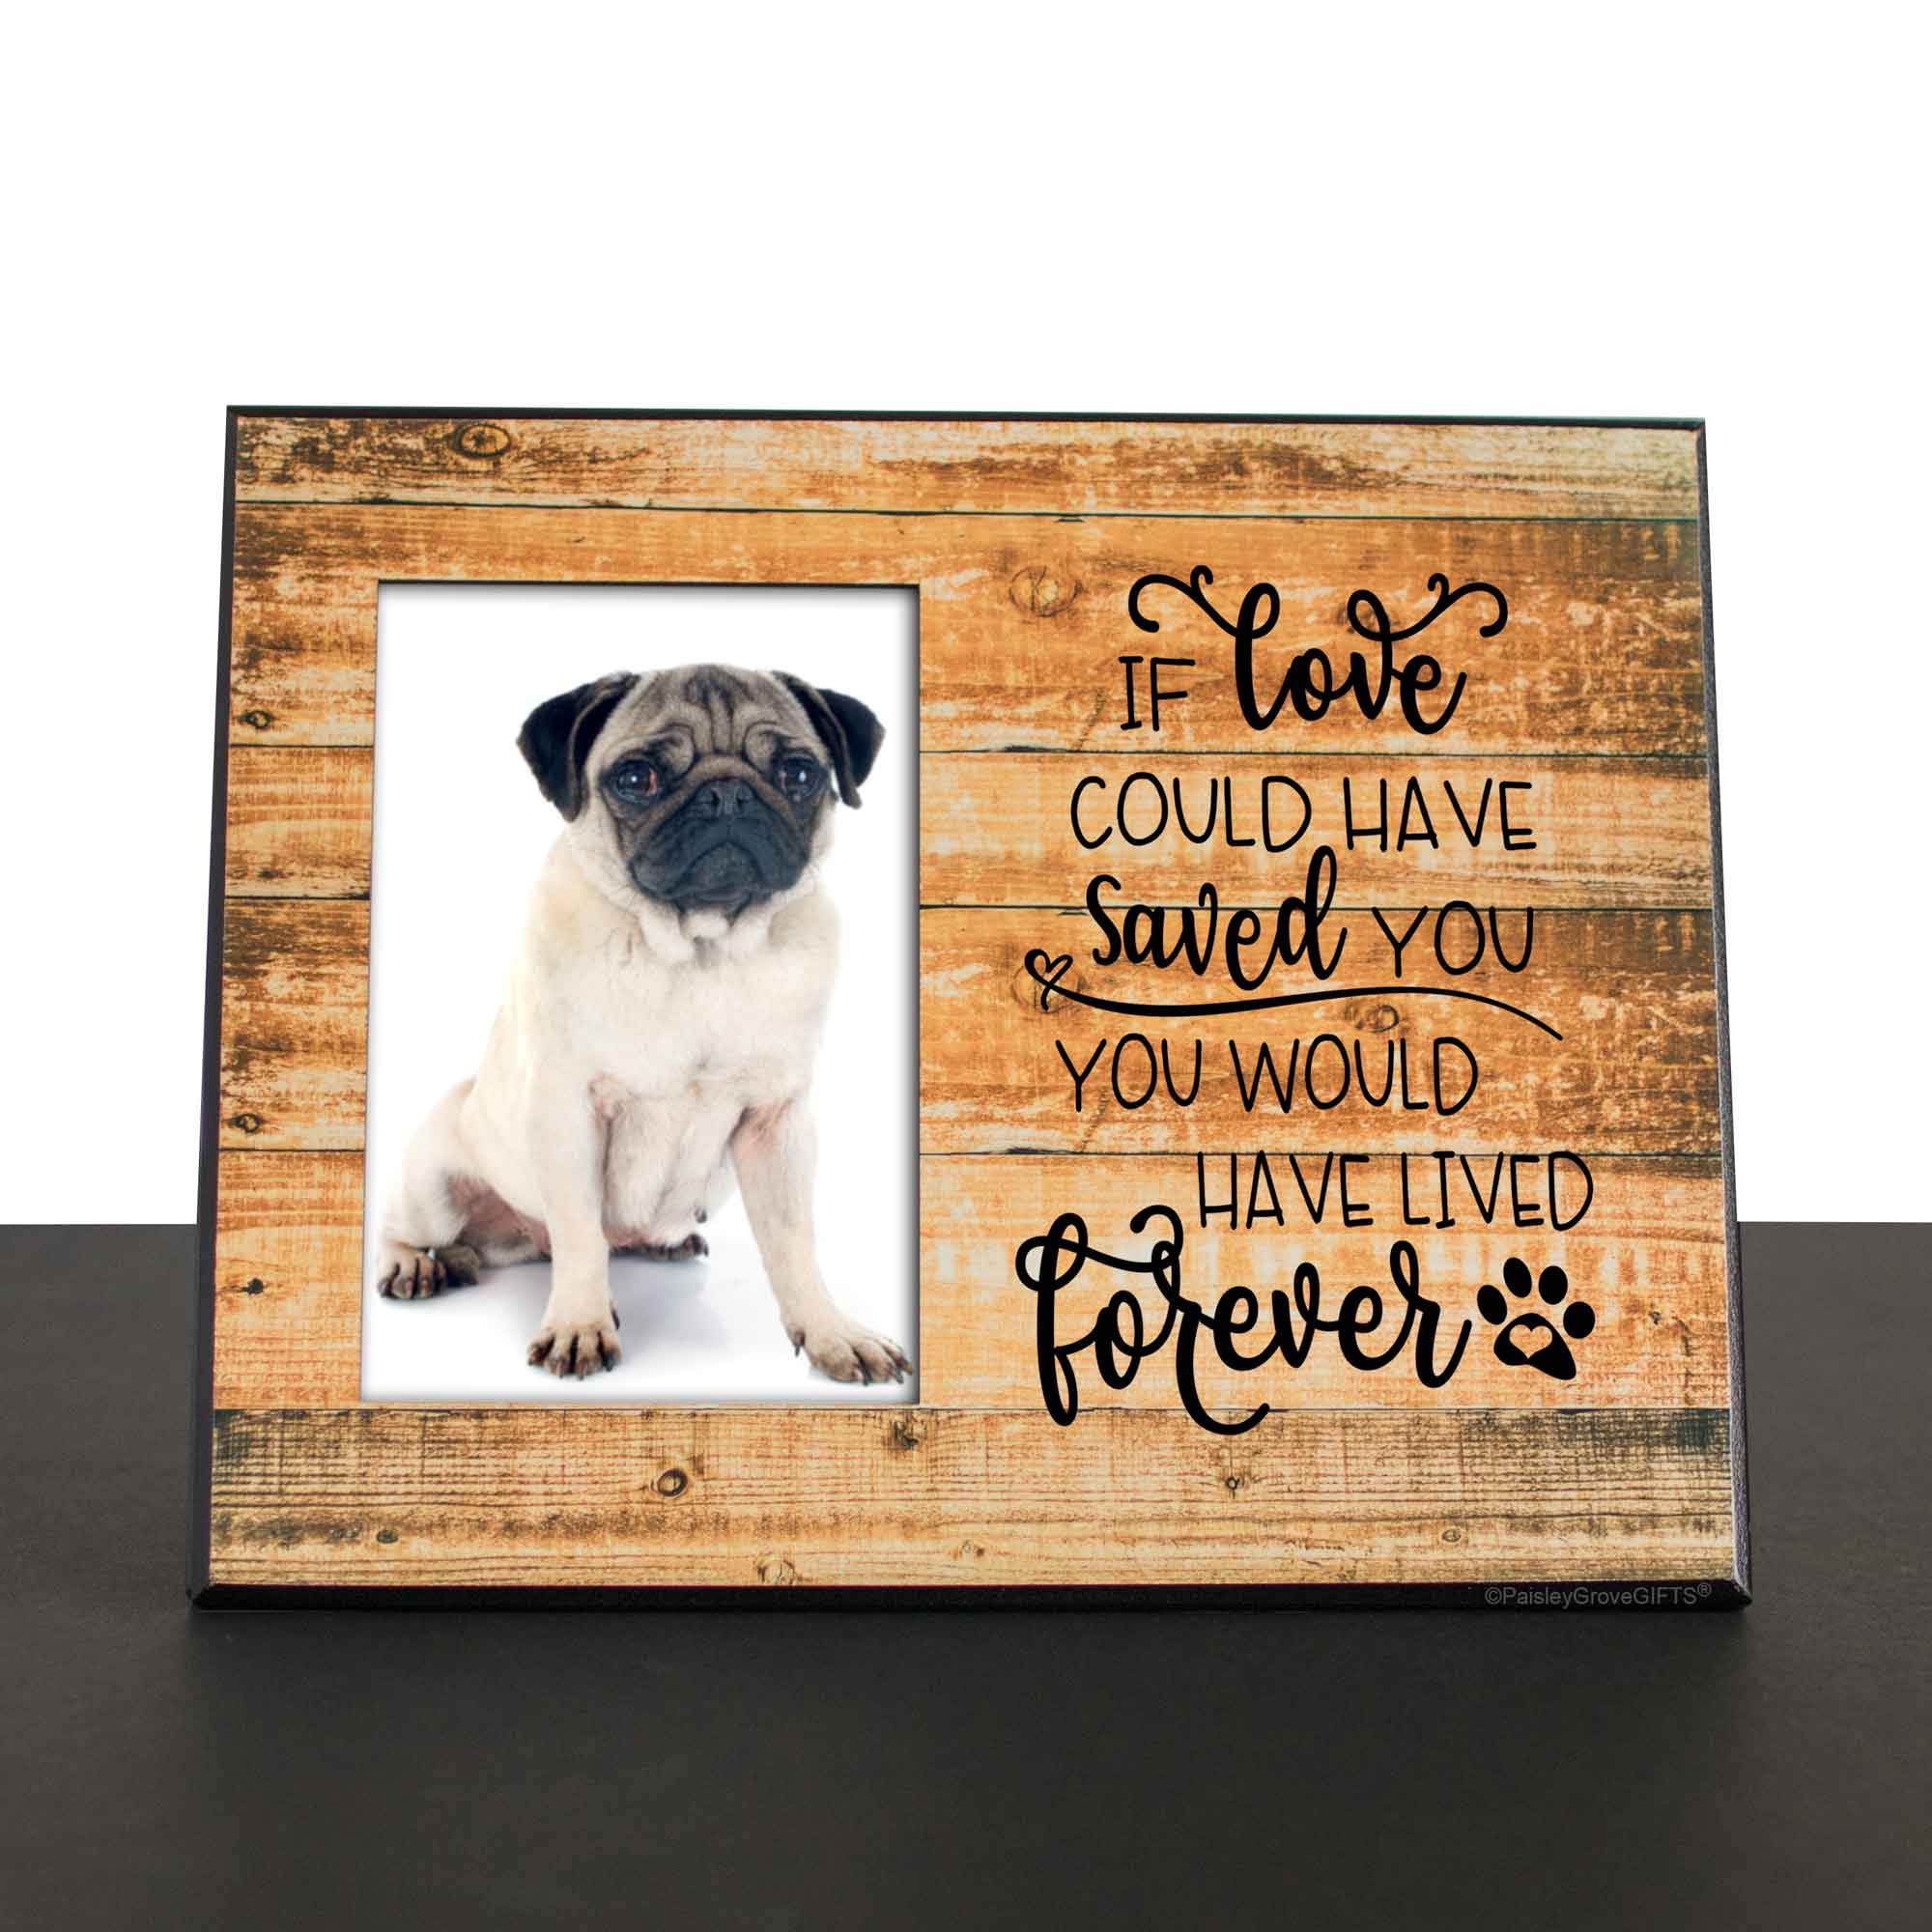 CopyrightPaisleyGroveGIFTS S280b Pug Death or Dog Loss Sympathy Gift for Pet Death Rainbow Bridge Paw Prints Photo Frame